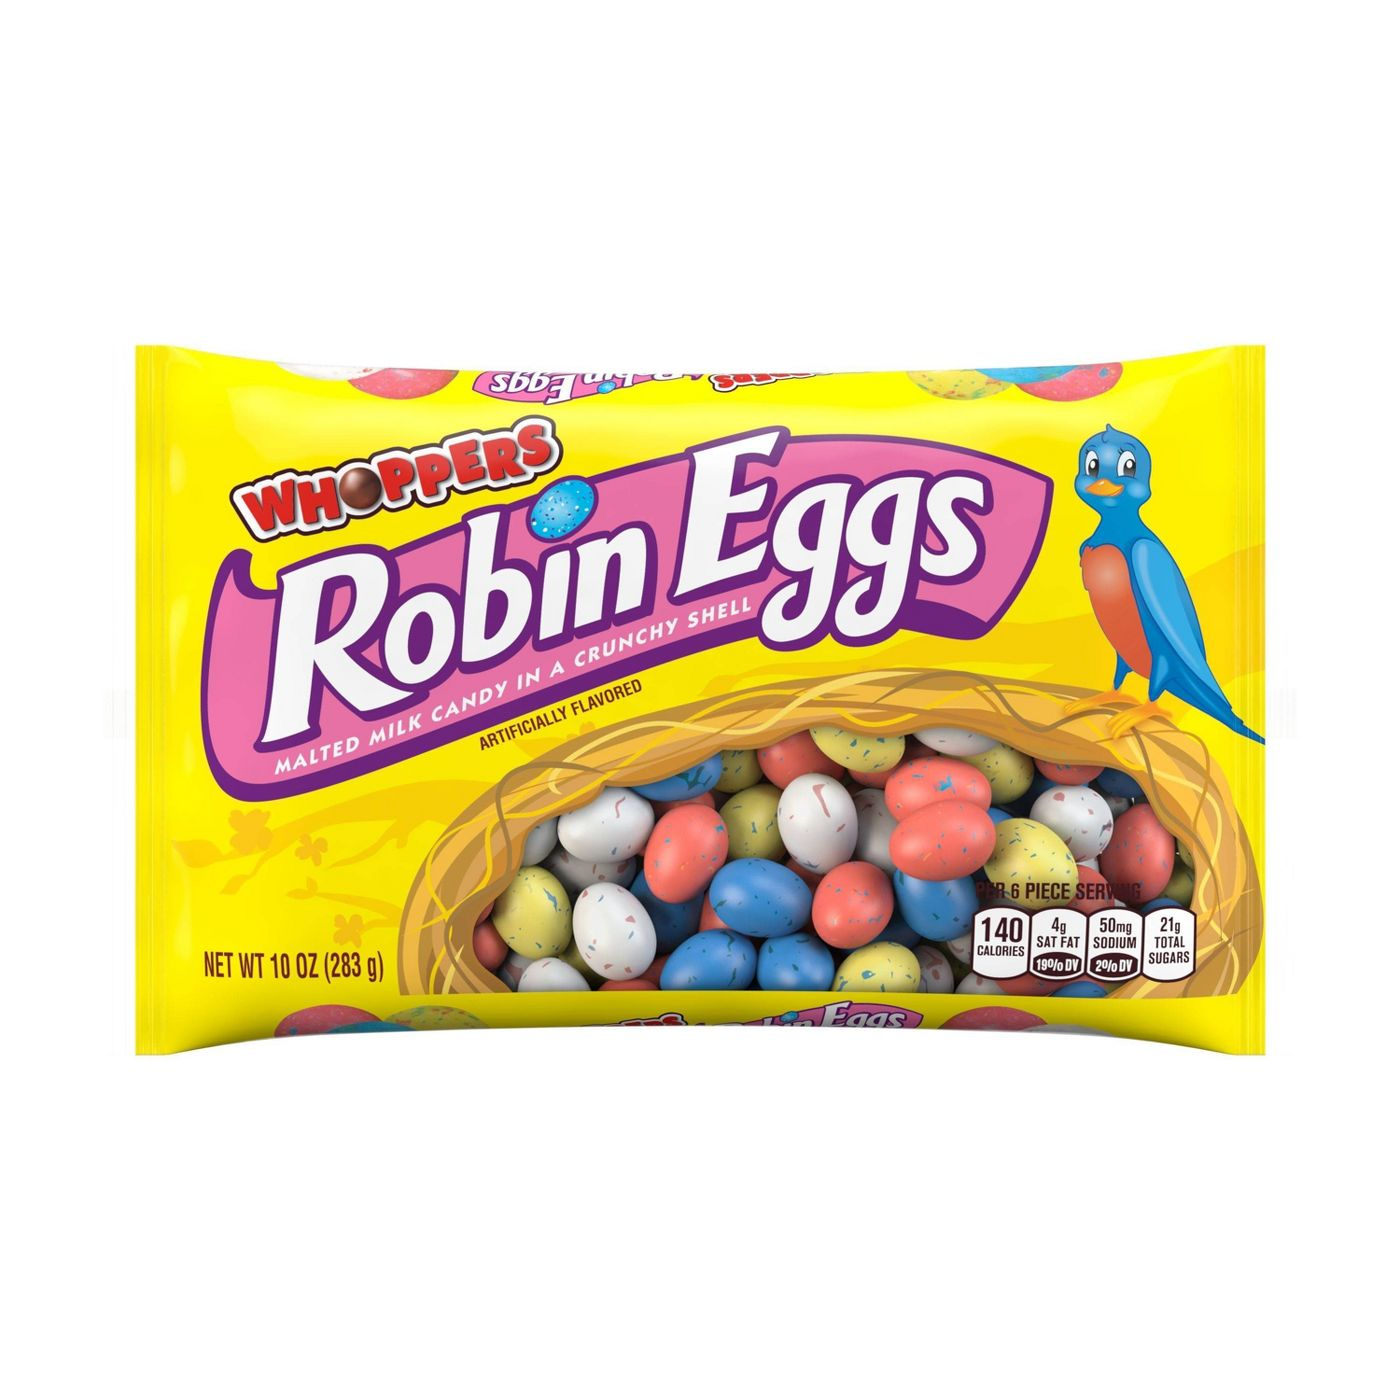 Whoppers Easter Robin Eggs, 10oz